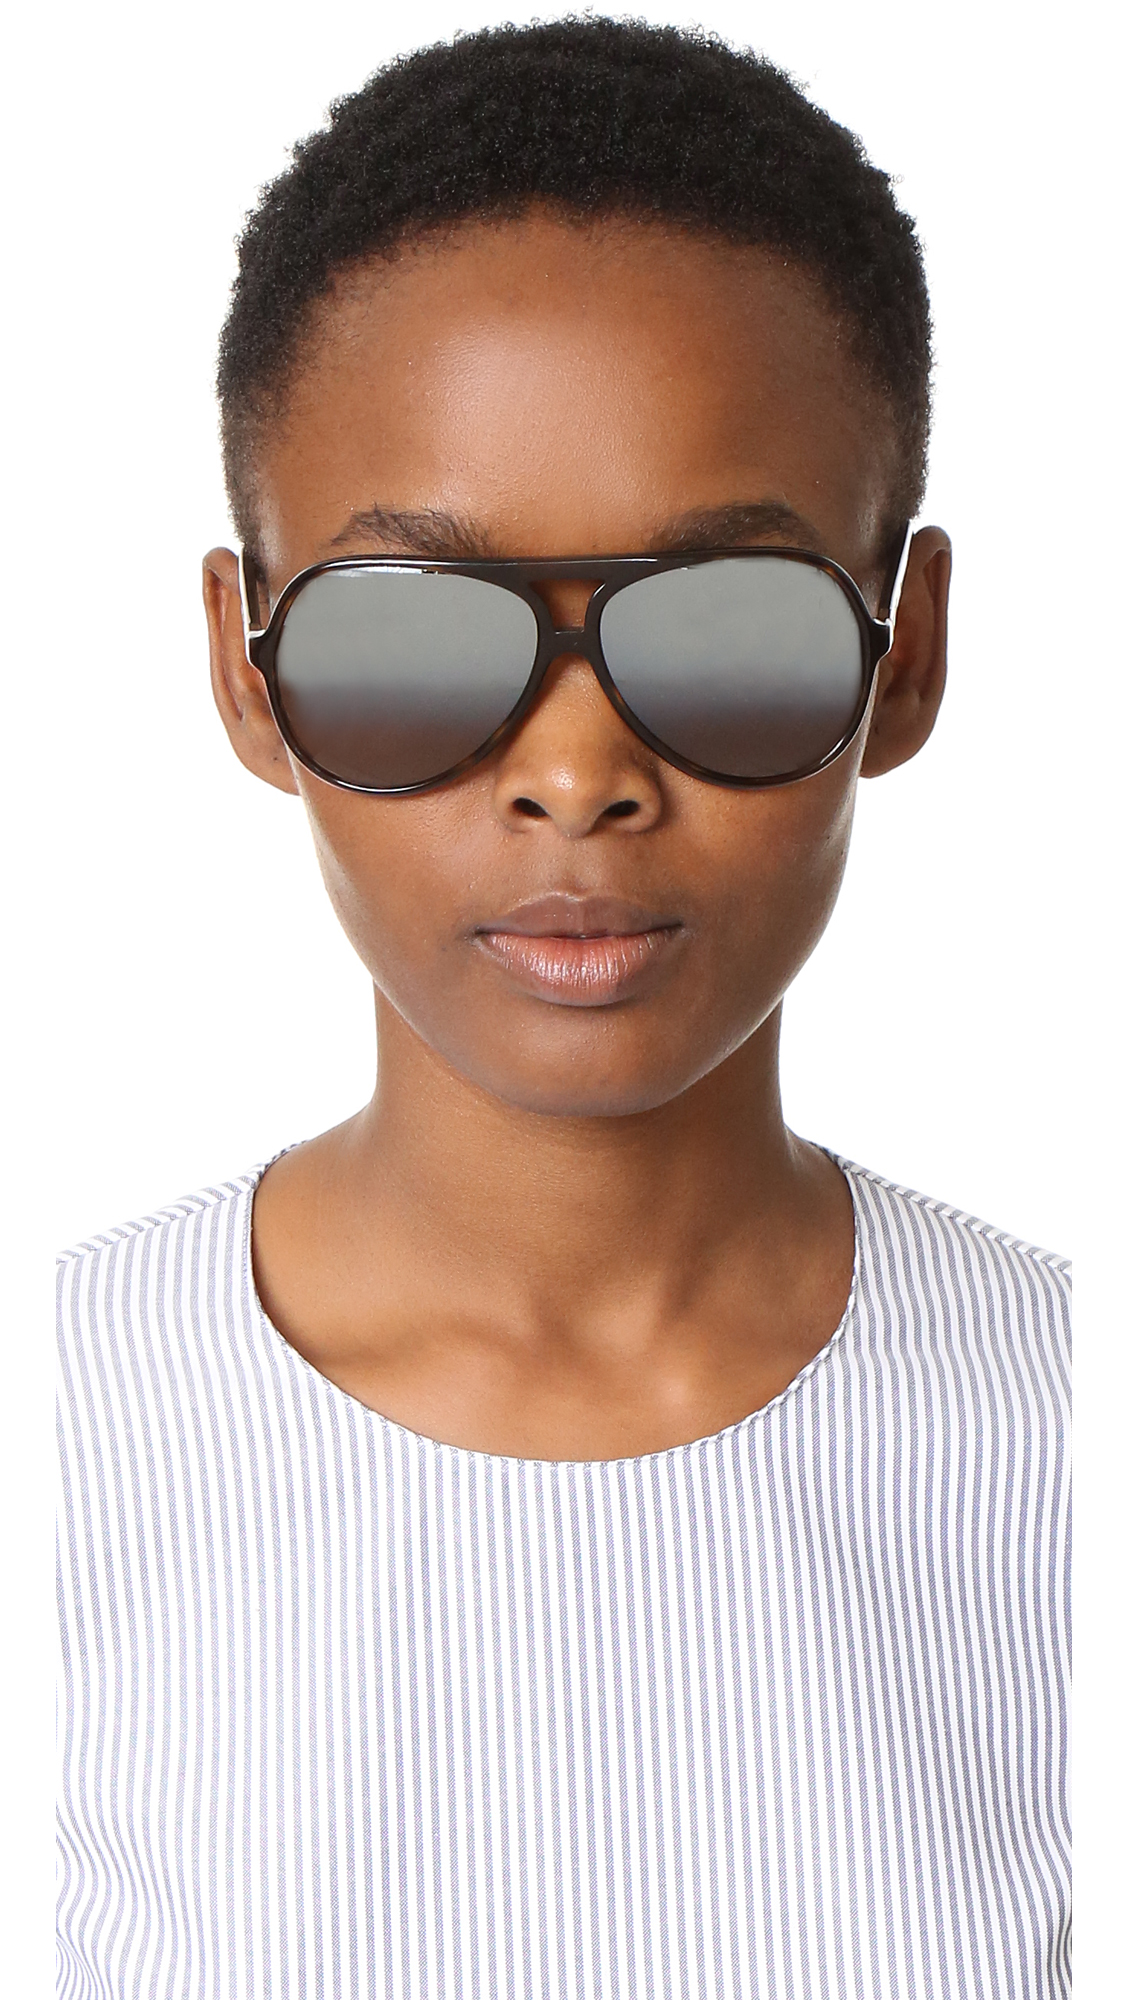 What with to wear aviator sunglasses new photo